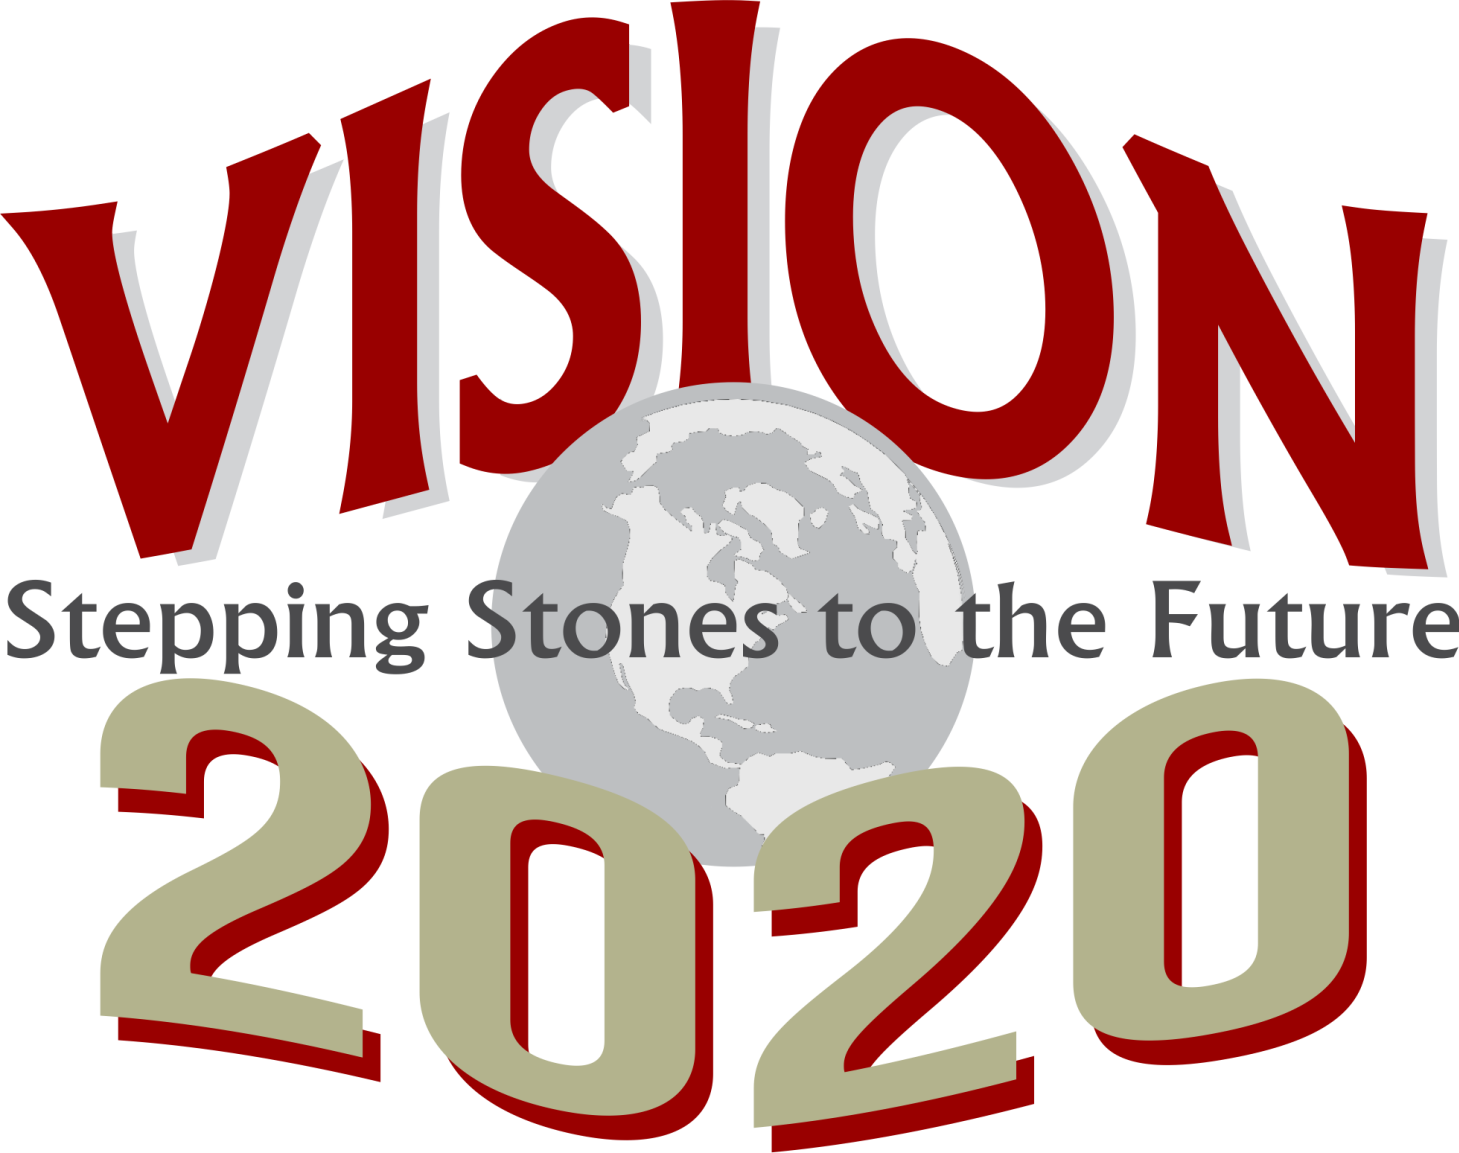 Vision clipart future work. Stepping stones next steps